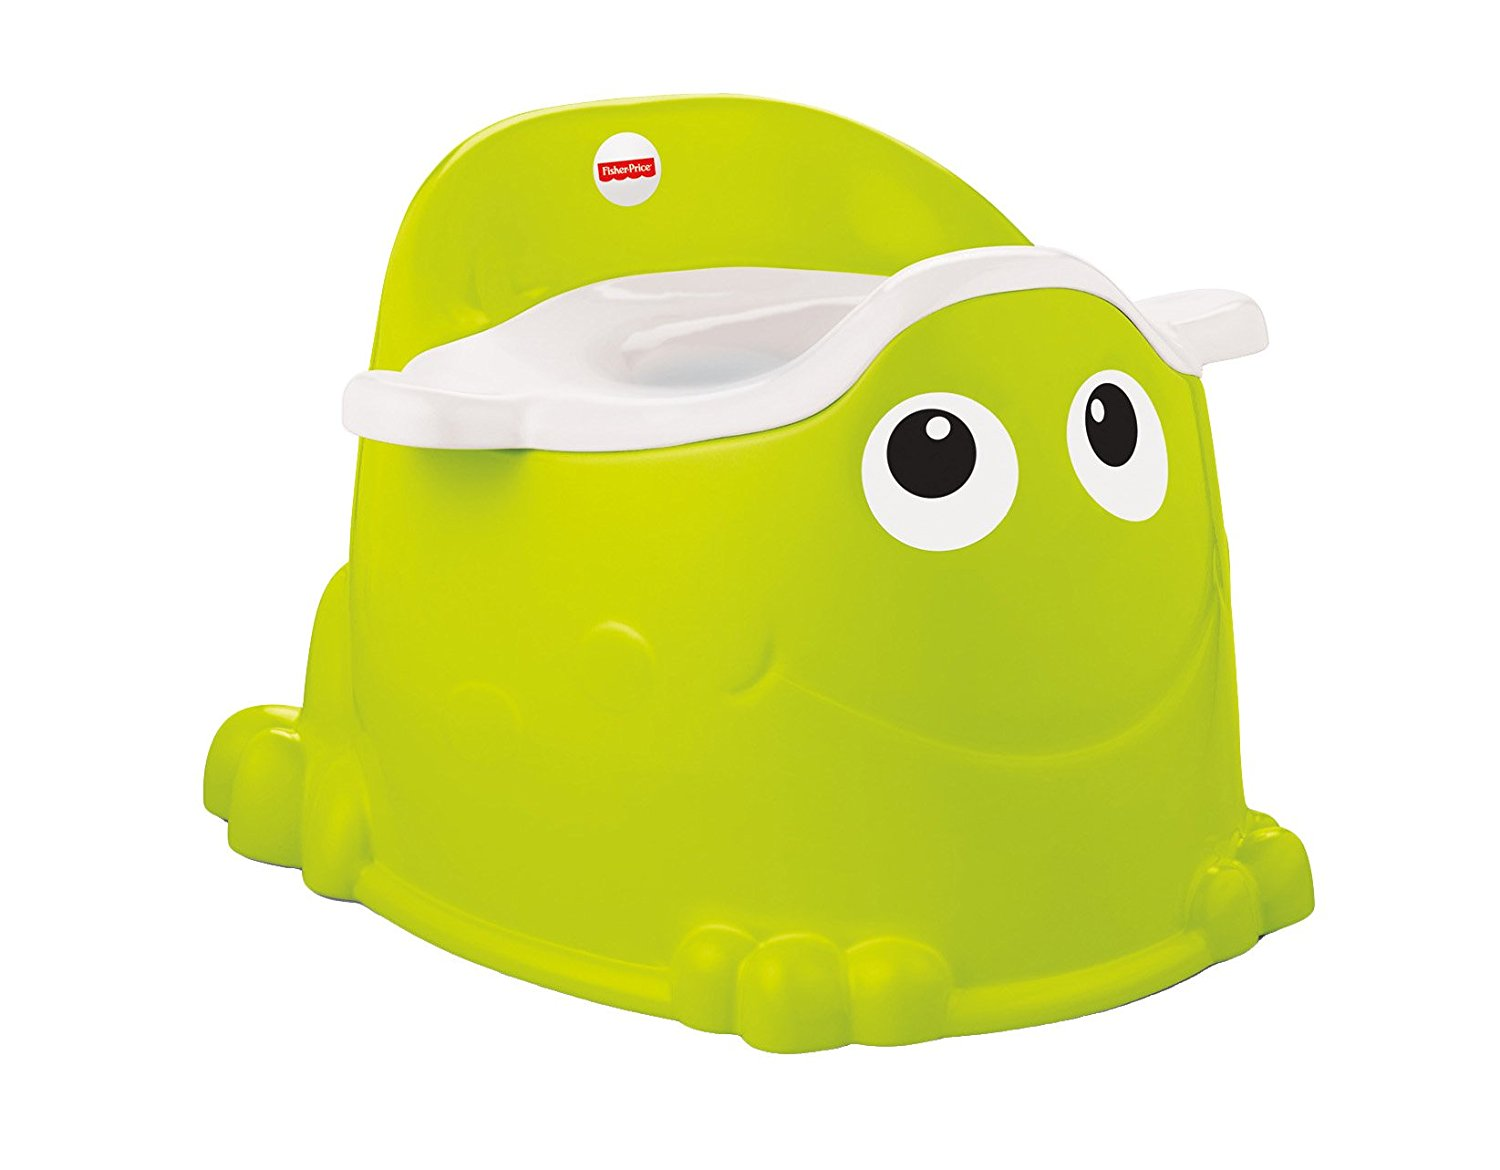 frog potty chair chairs for teenage rooms fisher price toilet training froggy friendly character makes more inviting by fisherprice ship from us walmart com